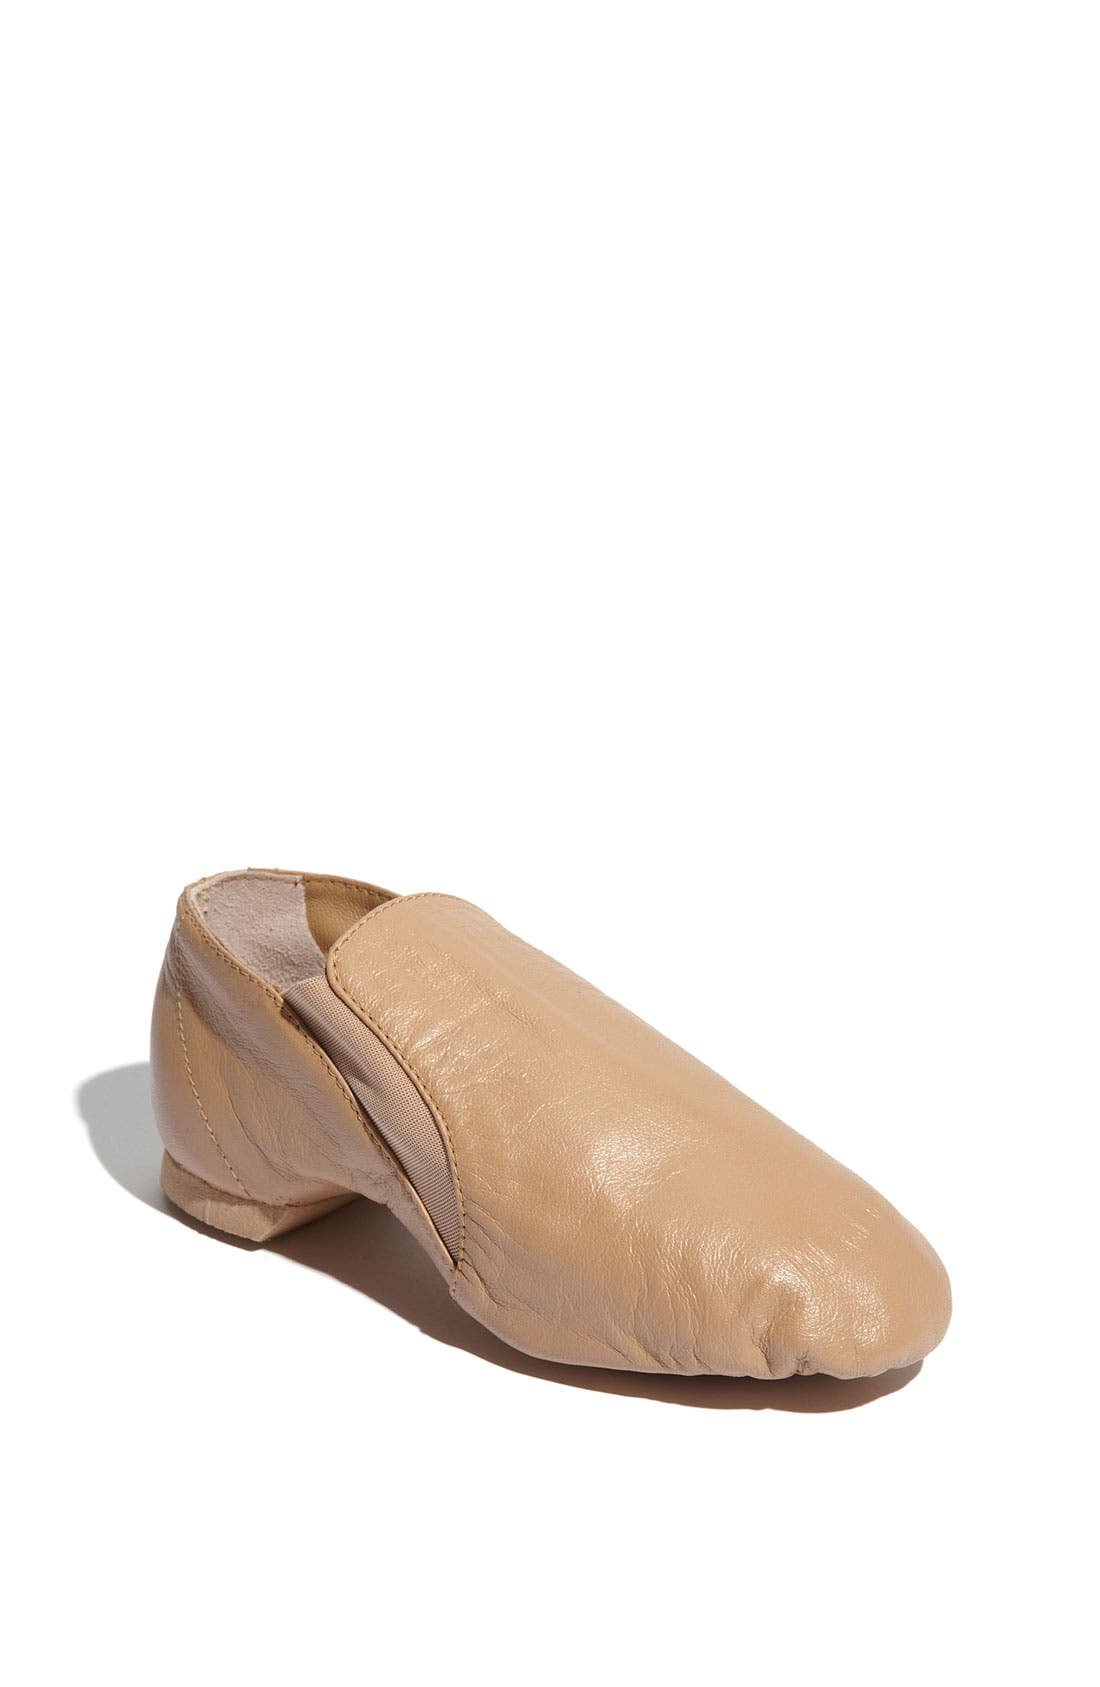 Alternate Image 1 Selected - Bloch 'Elasta Bootie' Jazz Shoe (Toddler, Little Kid & Big Kid)